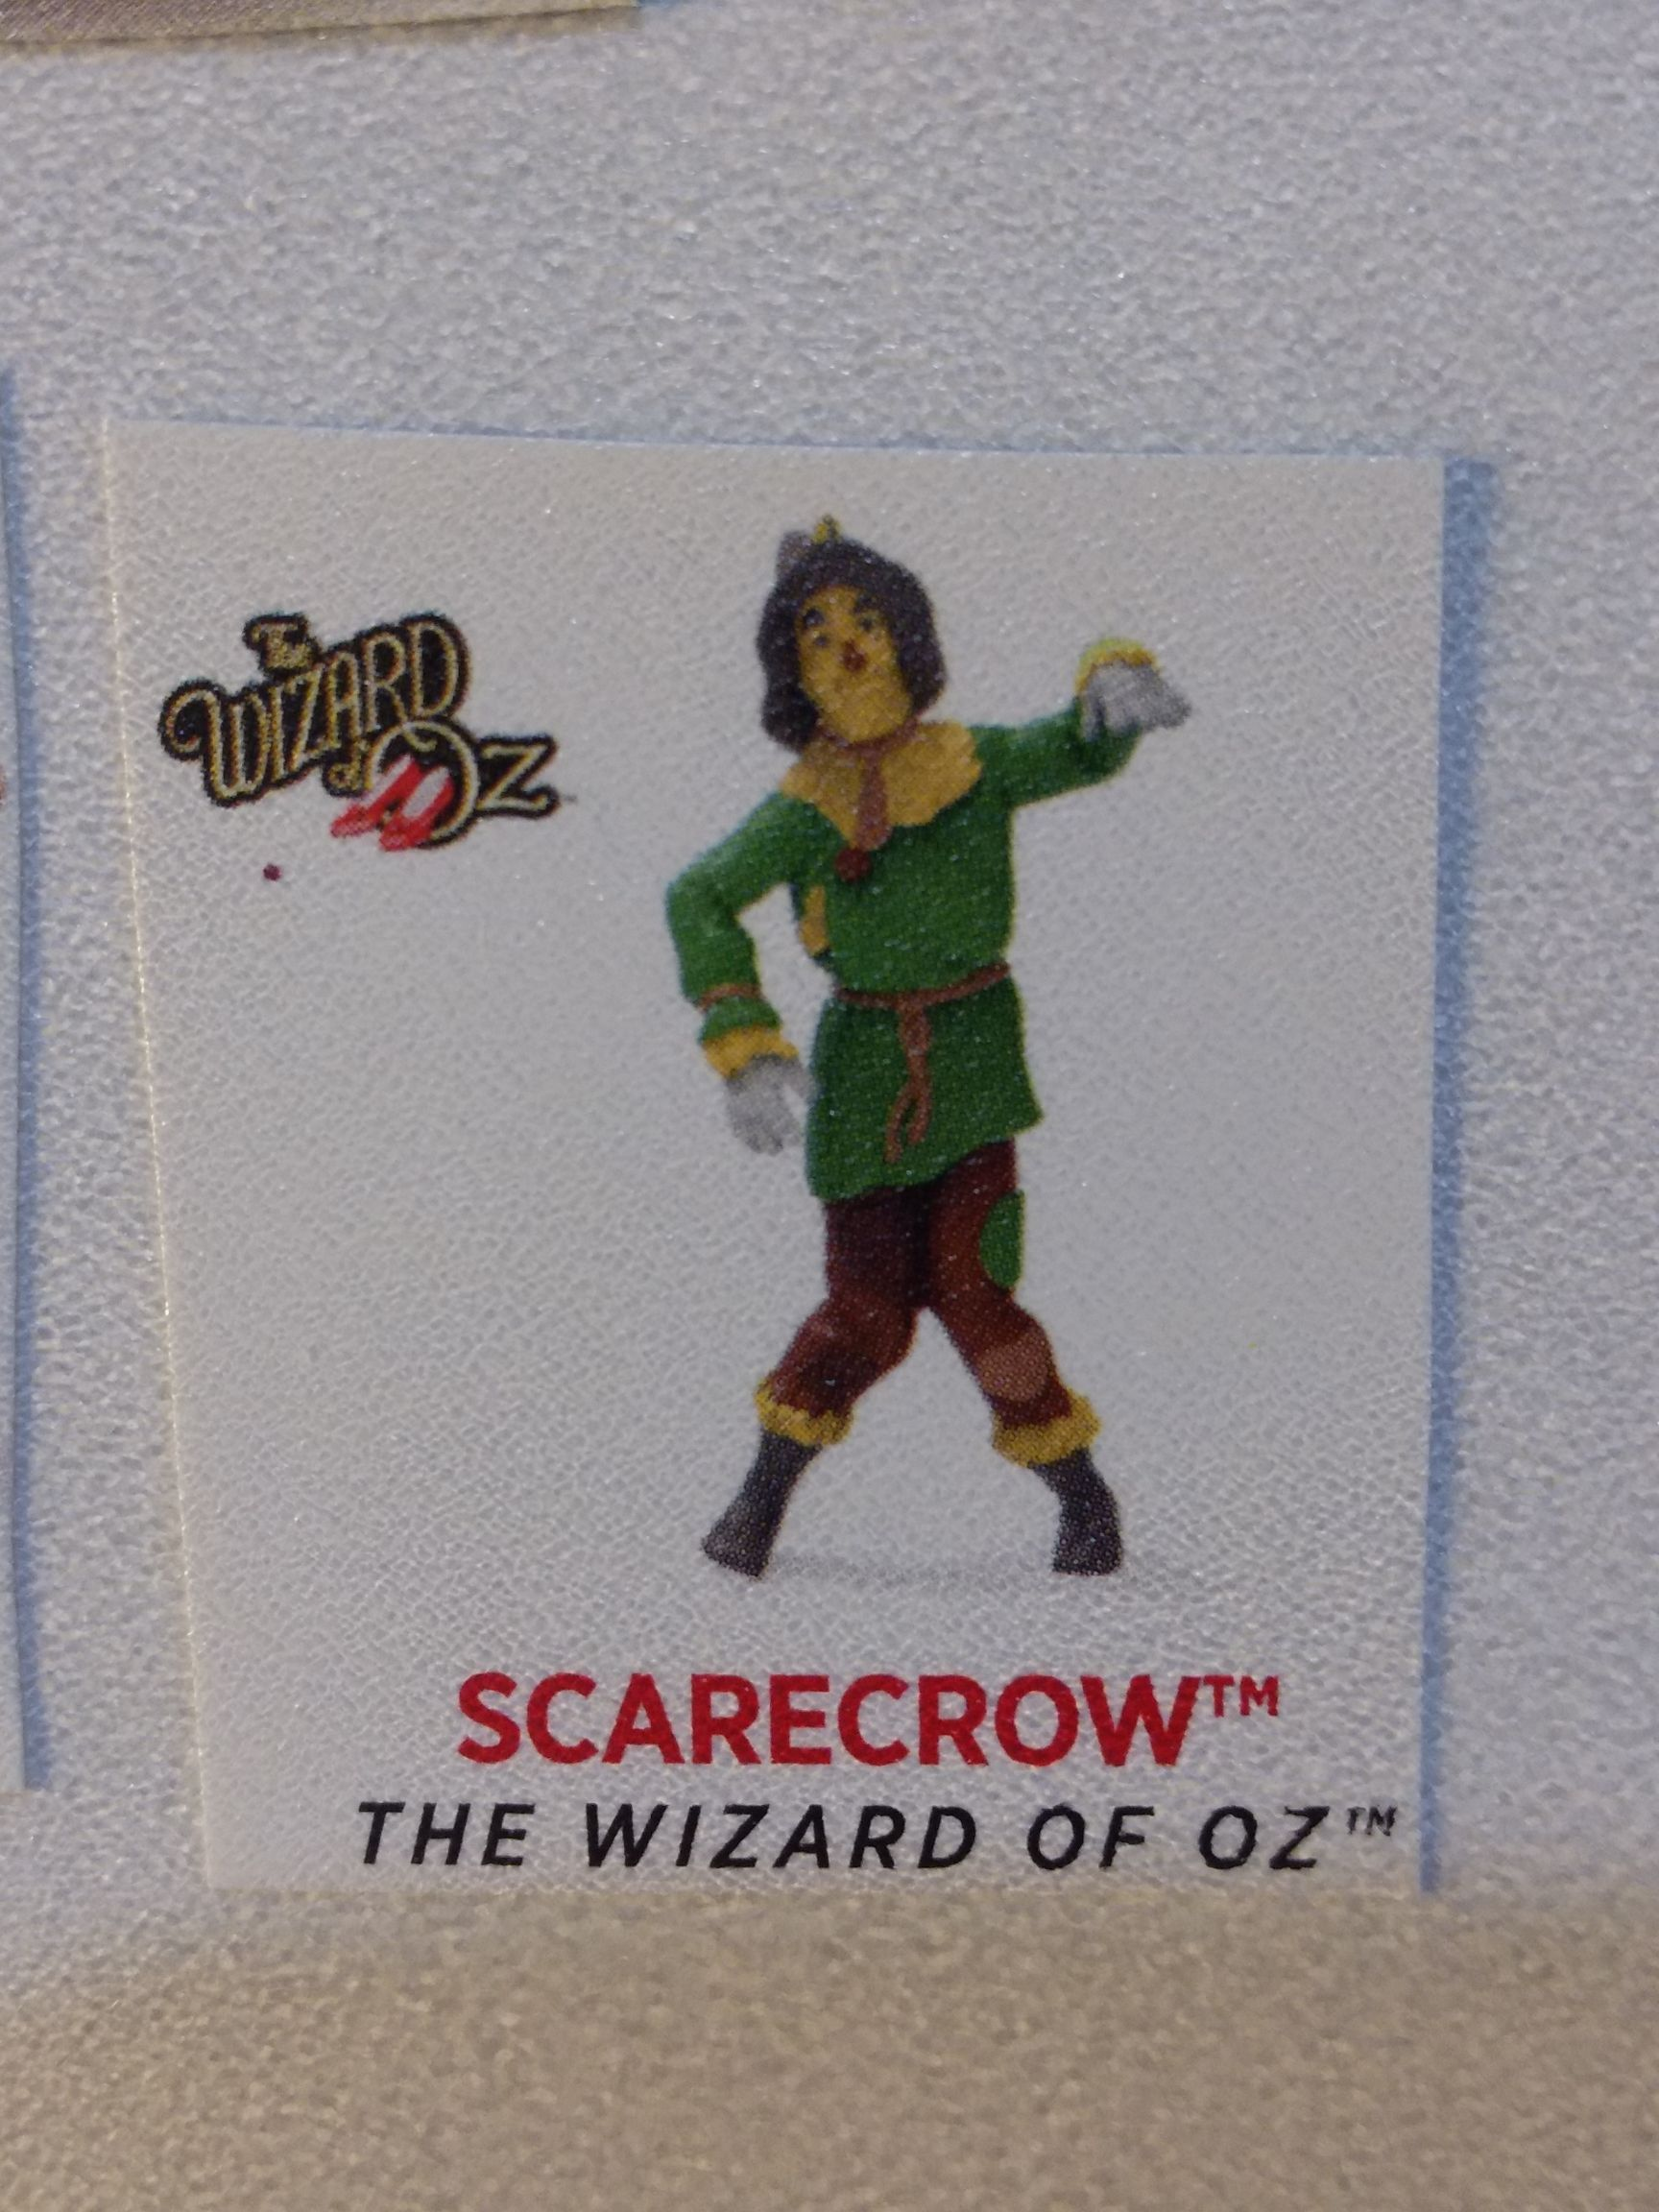 Z - Wizard Of Oz - Scarecrow Ornament - Hallmark front image (front cover)